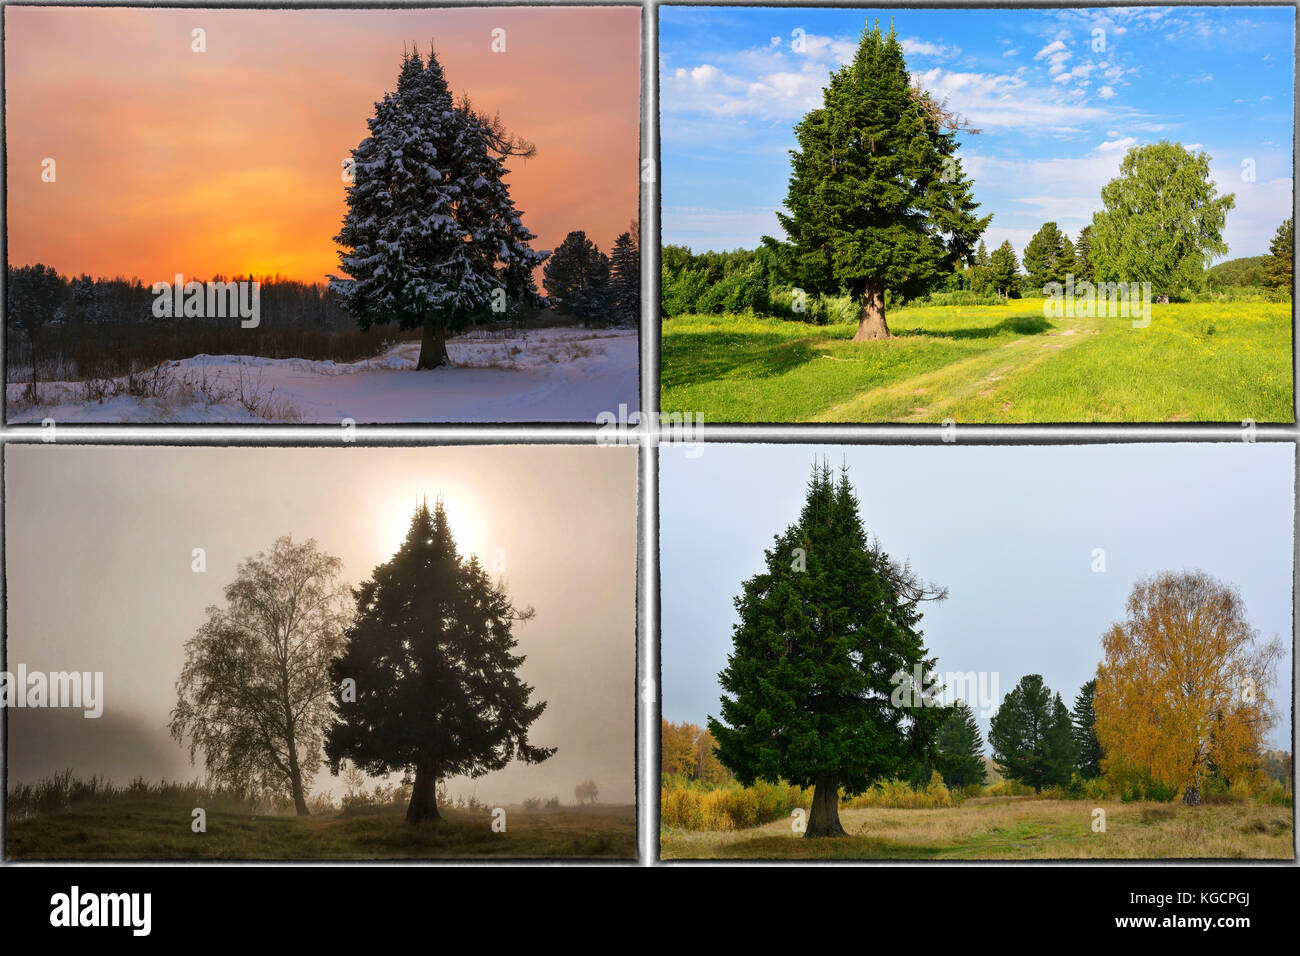 Four seasons spring, summer, autumn, winter trees collage with border - Stock Image